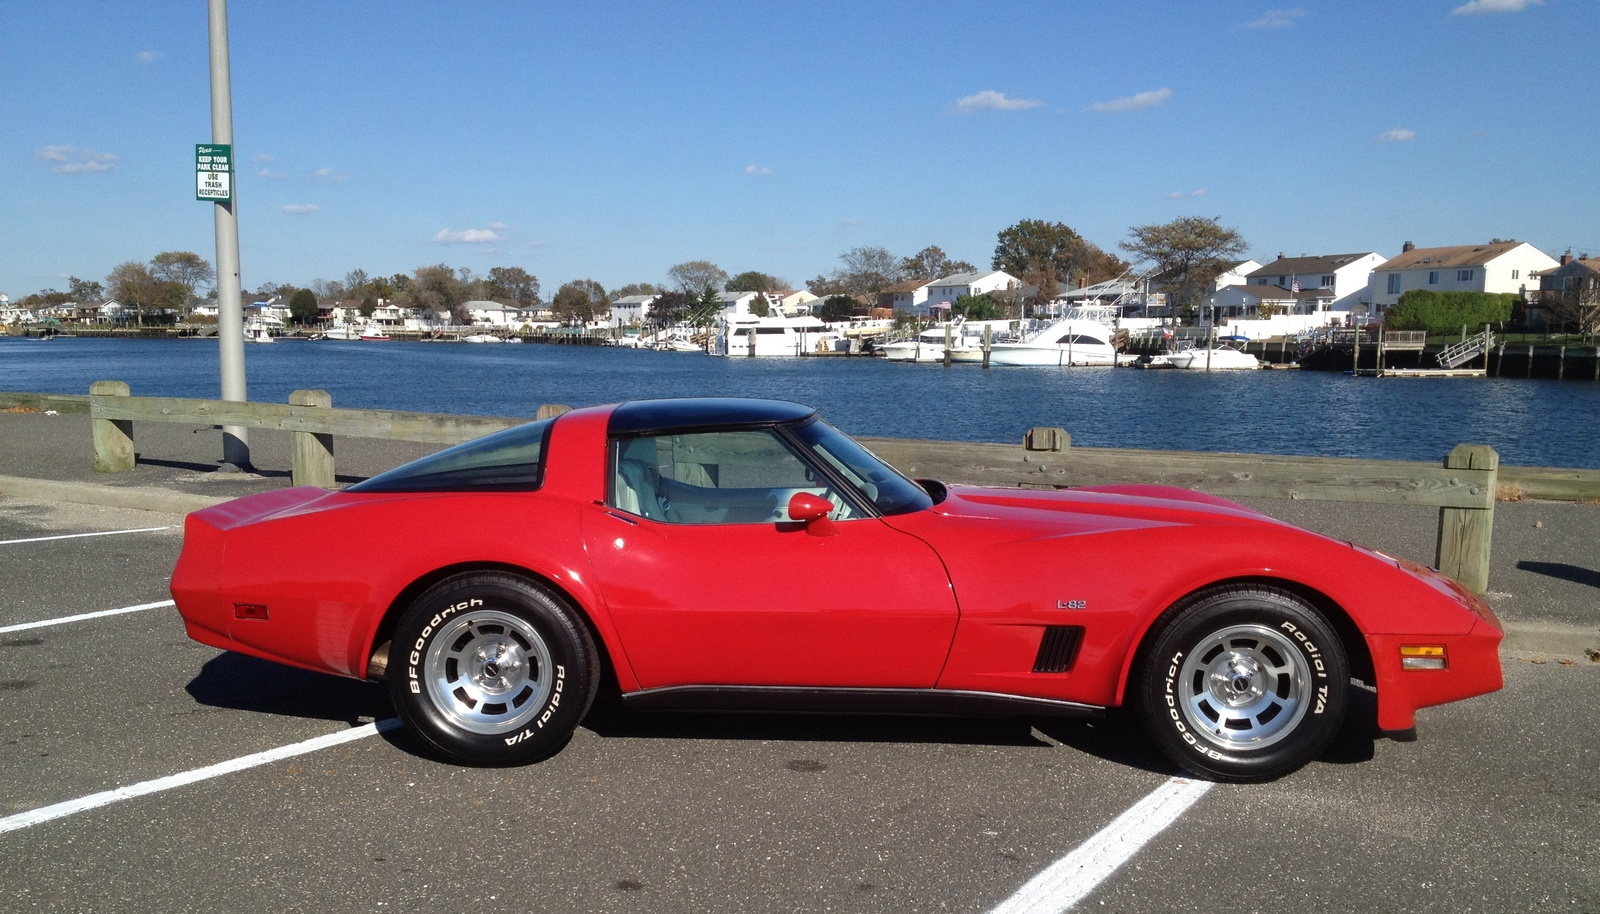 1993 Ford Mustang 50 1980 Chevrolet Corvette - Pictures - CarGurus